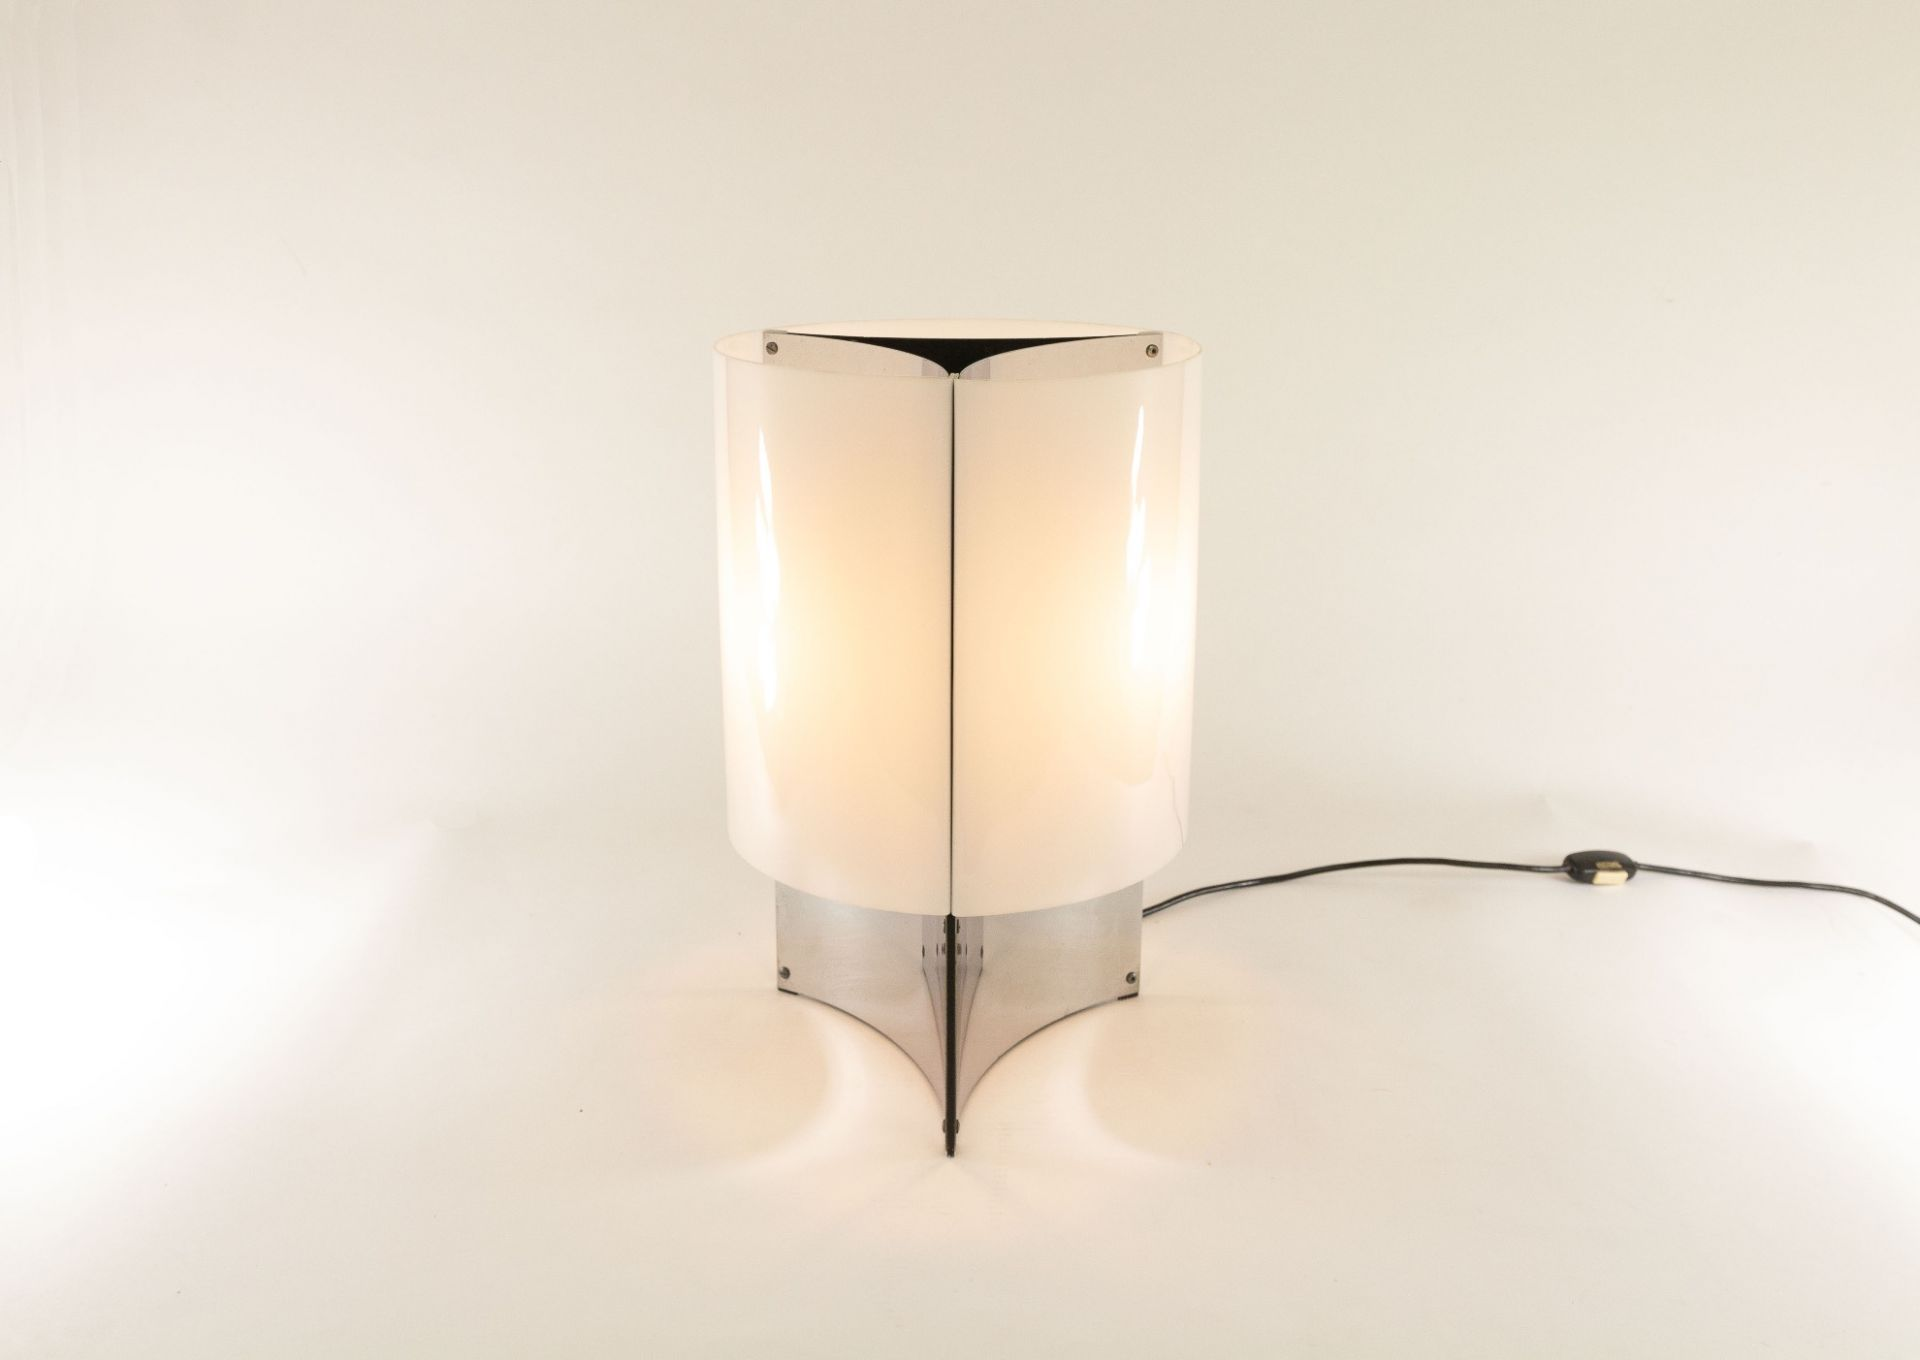 Table lamp model No. 526/P by Massimo Vignelli for Arteluce, 1965